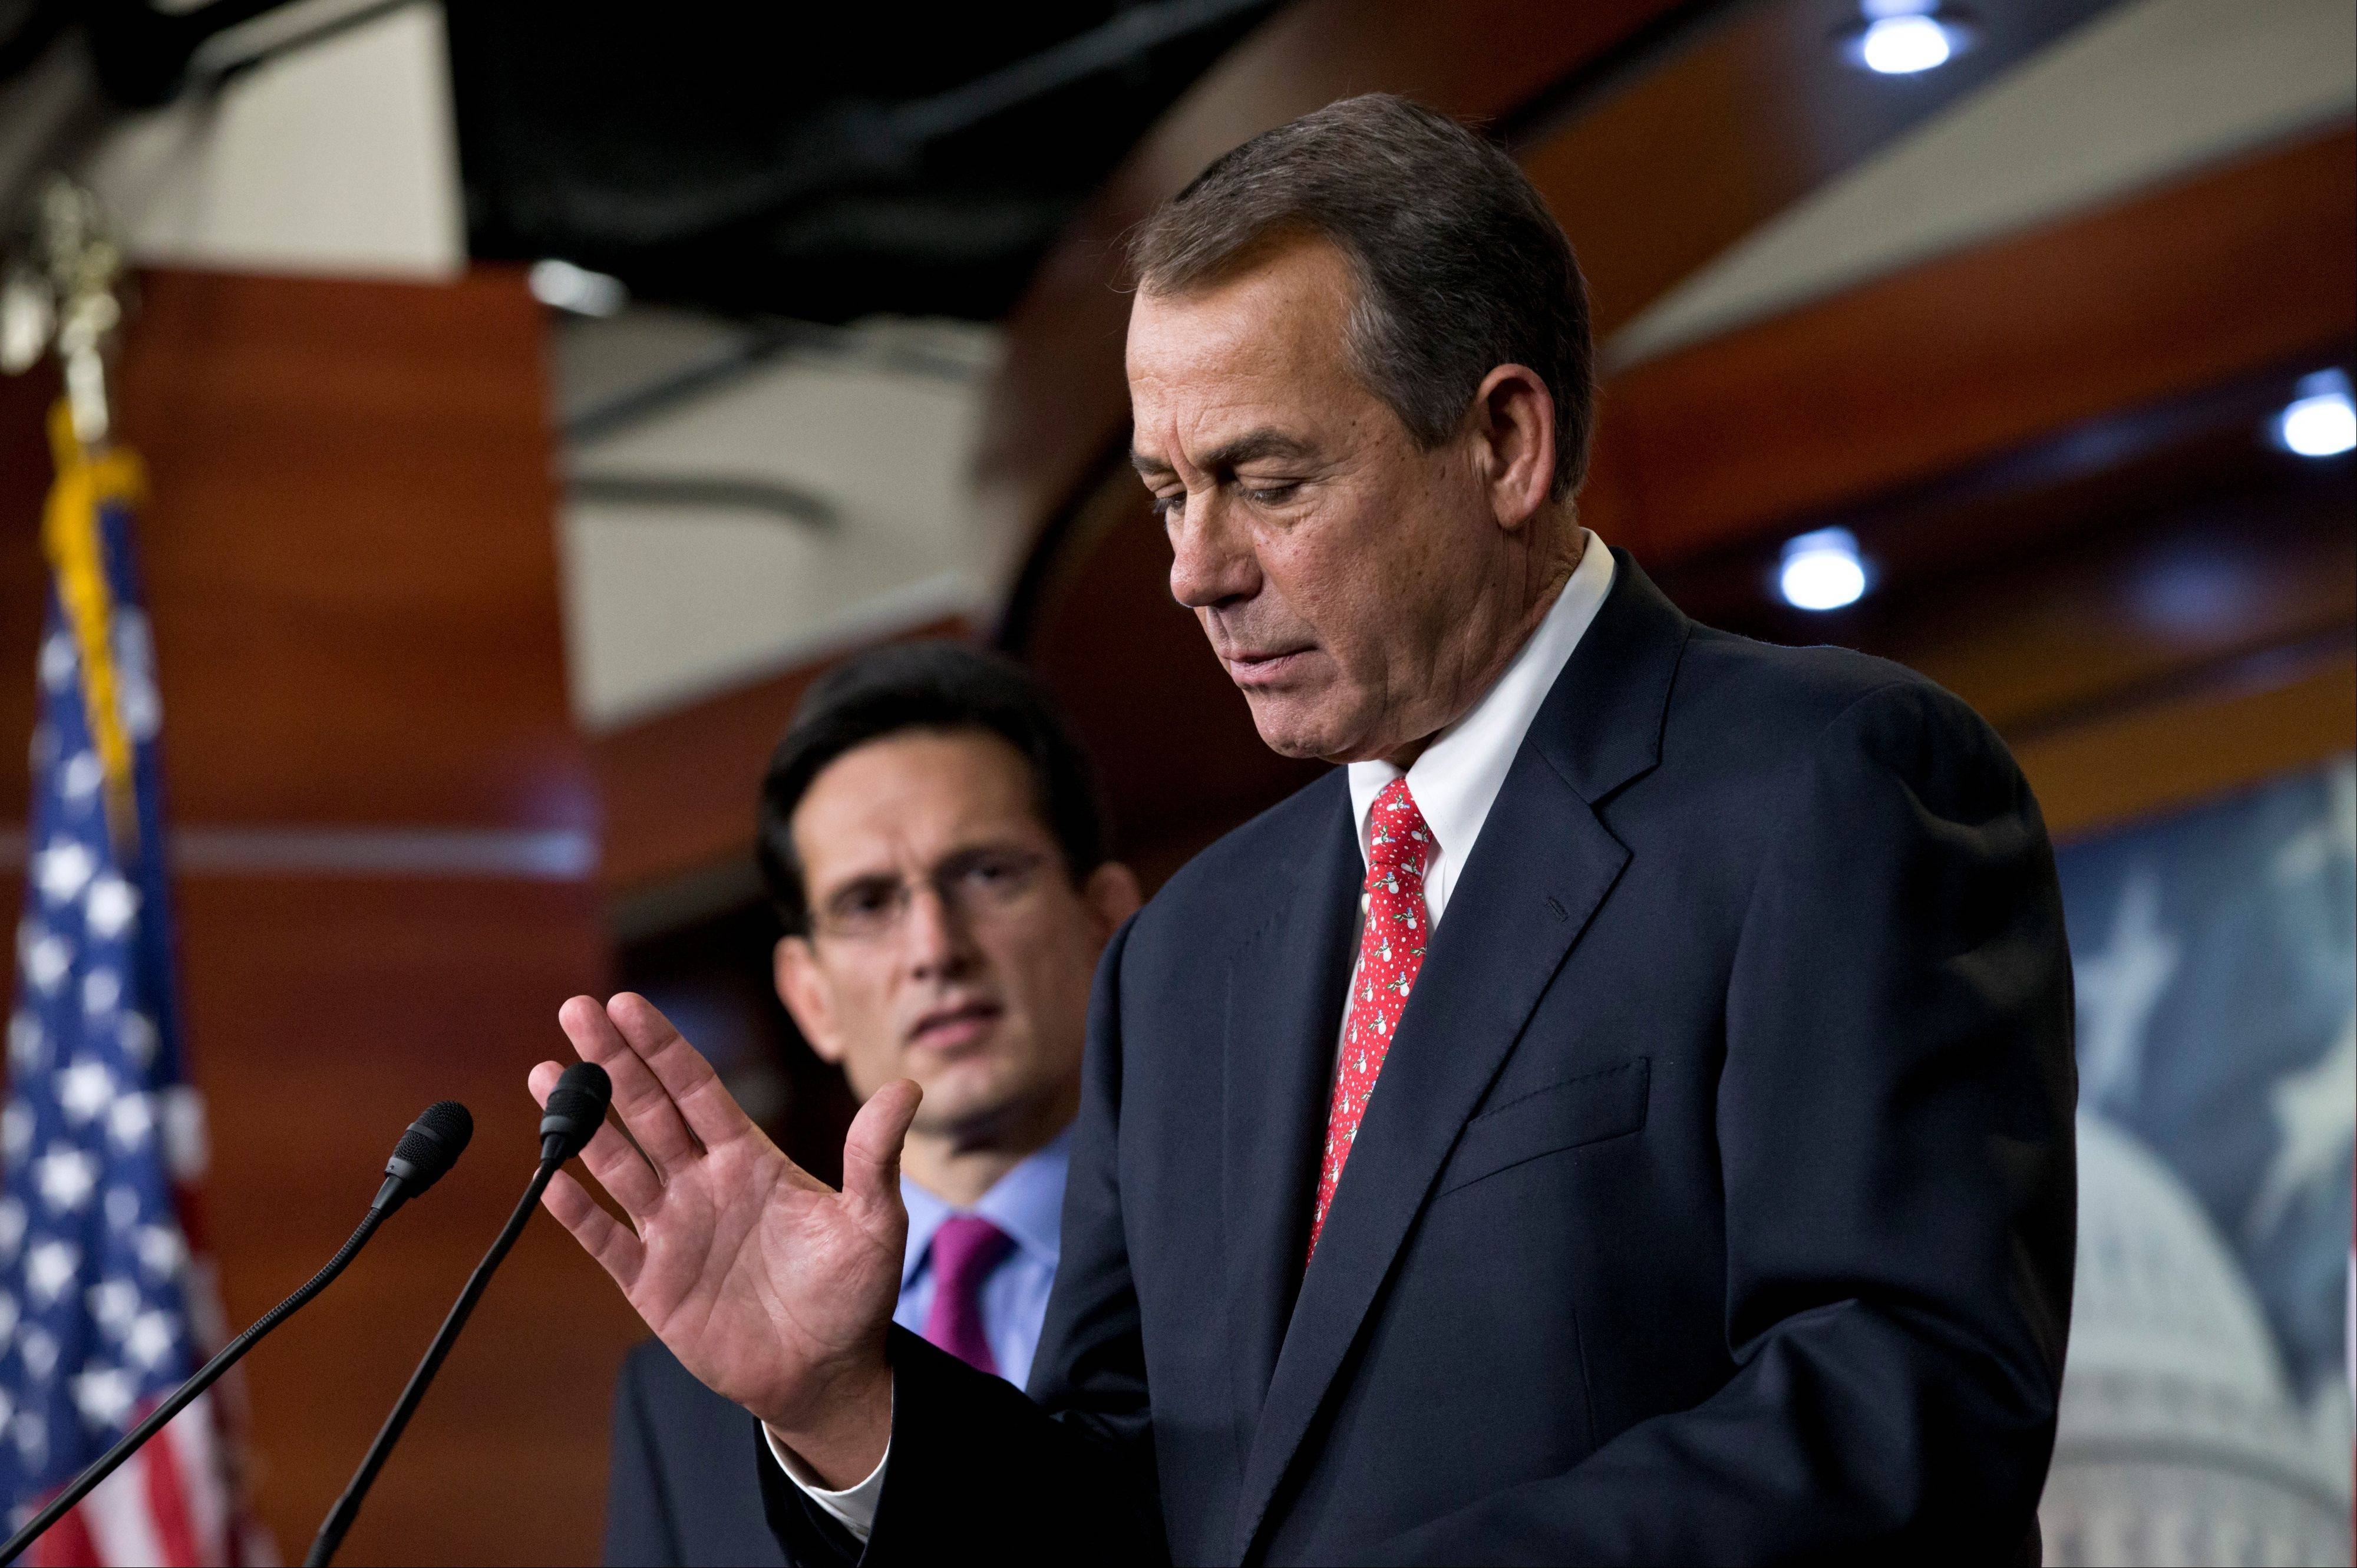 Speaker of the House John Boehner, an Ohio Republican, joined by House Majority Leader Eric Cantor, a Virginia Republican, left, speaks to reporters about the fiscal cliff negotiations at the Capitol in Washington.